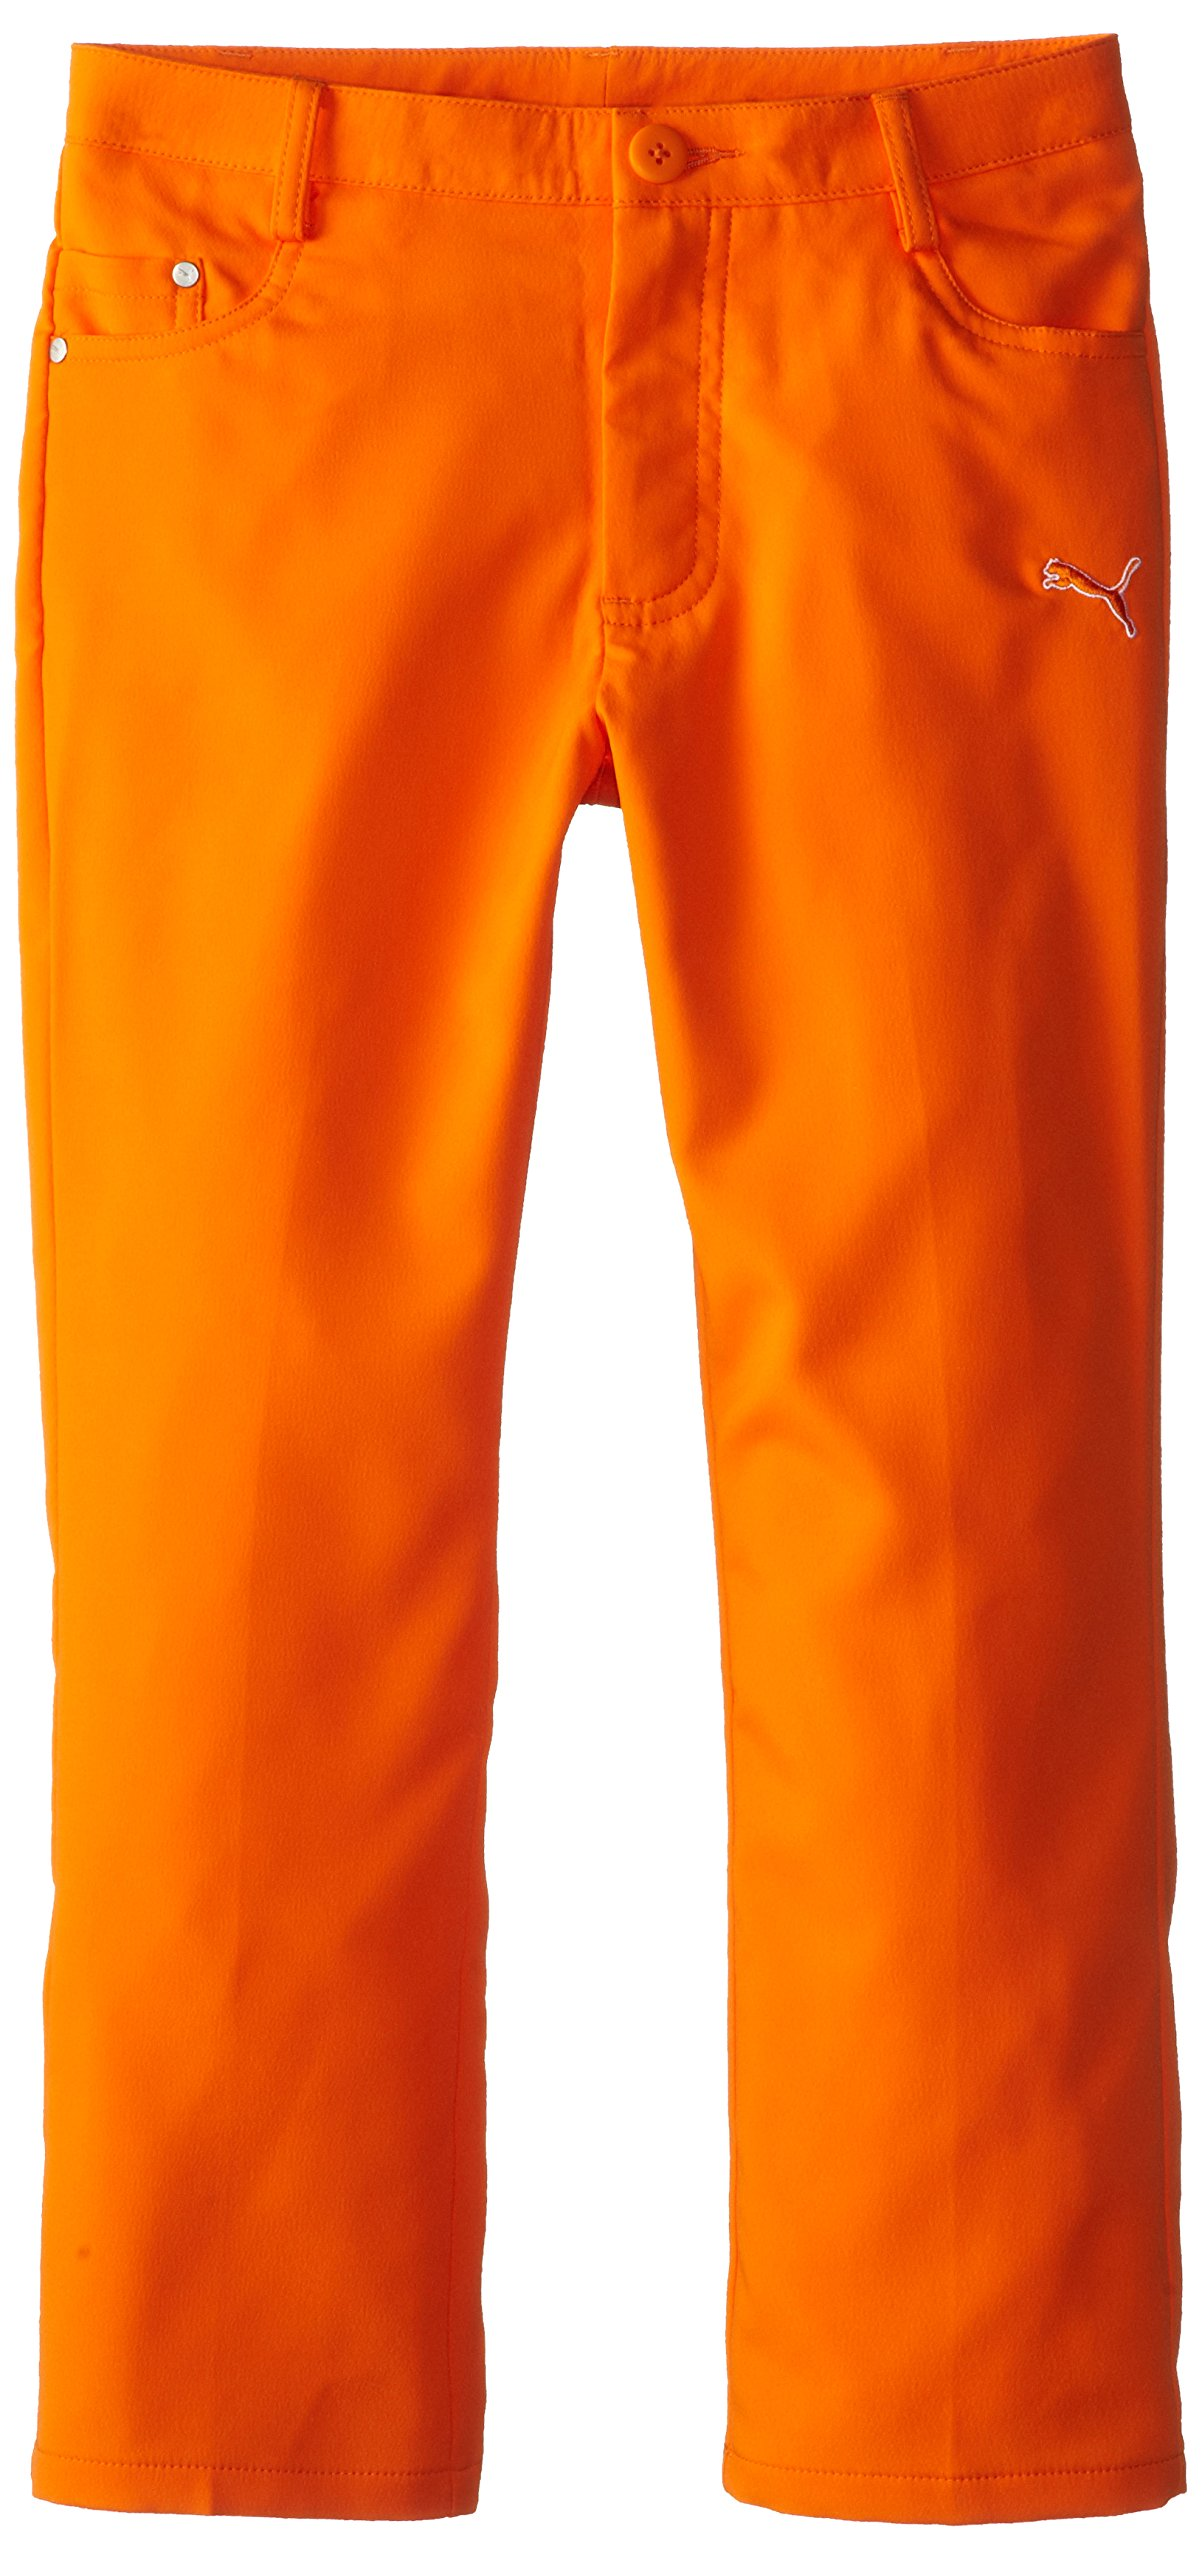 Puma Golf Boys Junior 5 Pocket Pant, Vibrant Orange, X-Large by PUMA